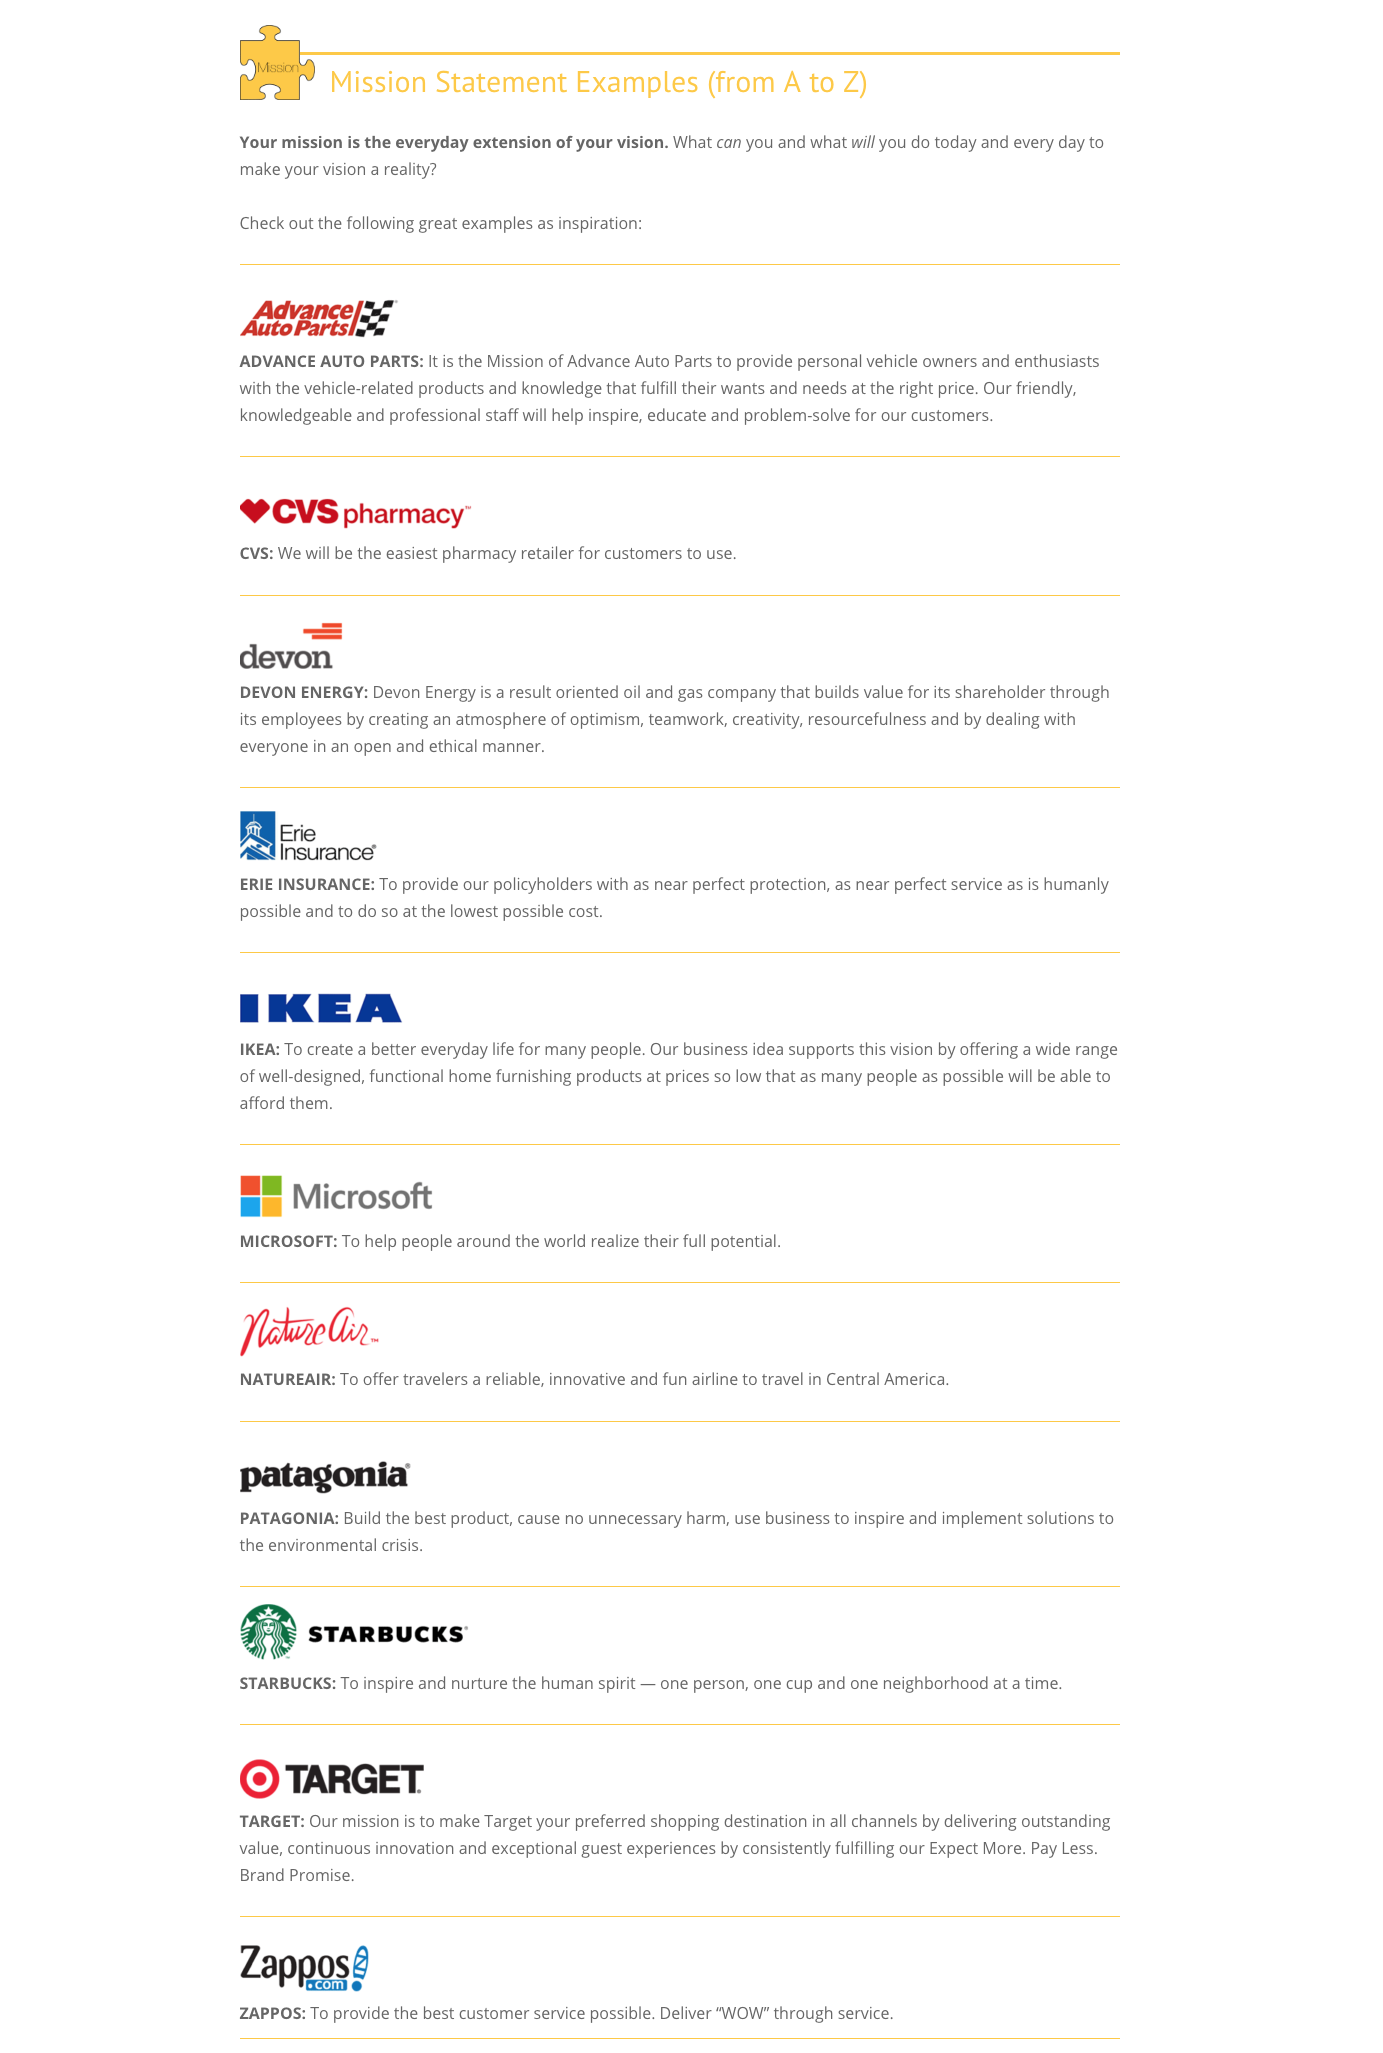 Examples Of Mission Statements From Top Companies